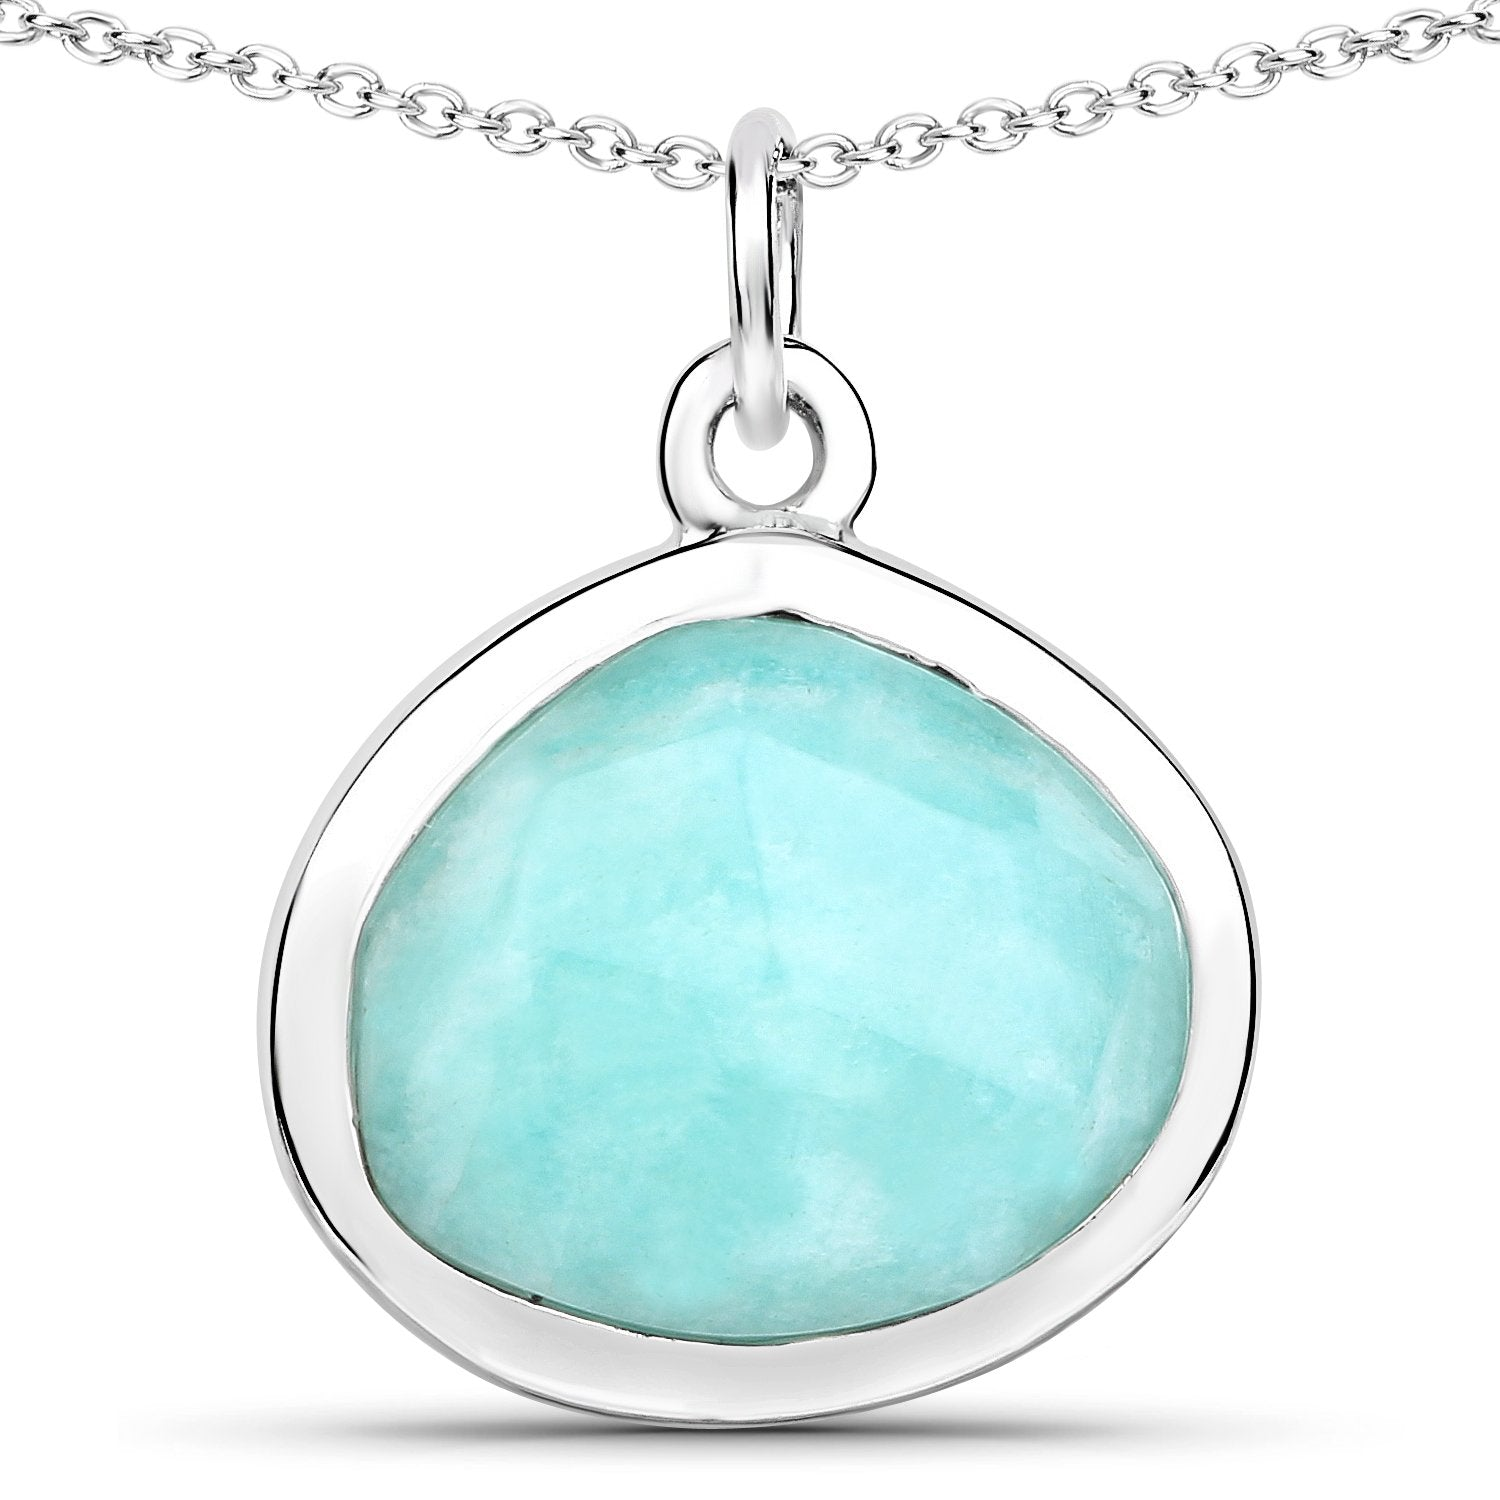 LoveHuang 3.70 Carats Genuine Amazonite Rose Cut Pendant Solid .925 Sterling Silver With Rhodium Plating, 18Inch Chain